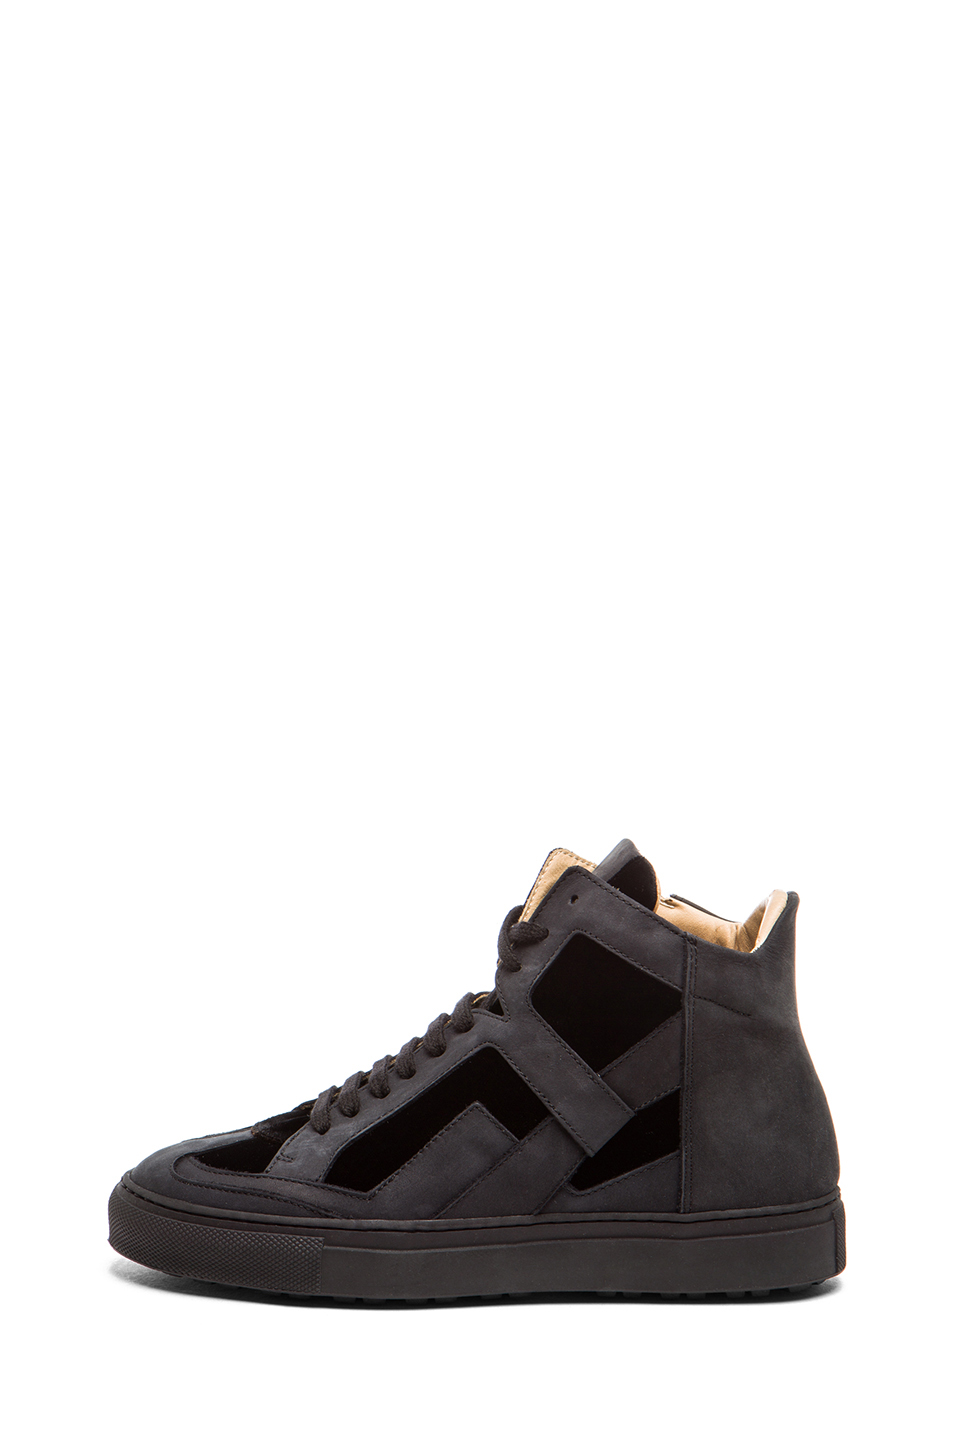 MM6 by maison martin margiela|Nubuck Leather Sneakers in Black